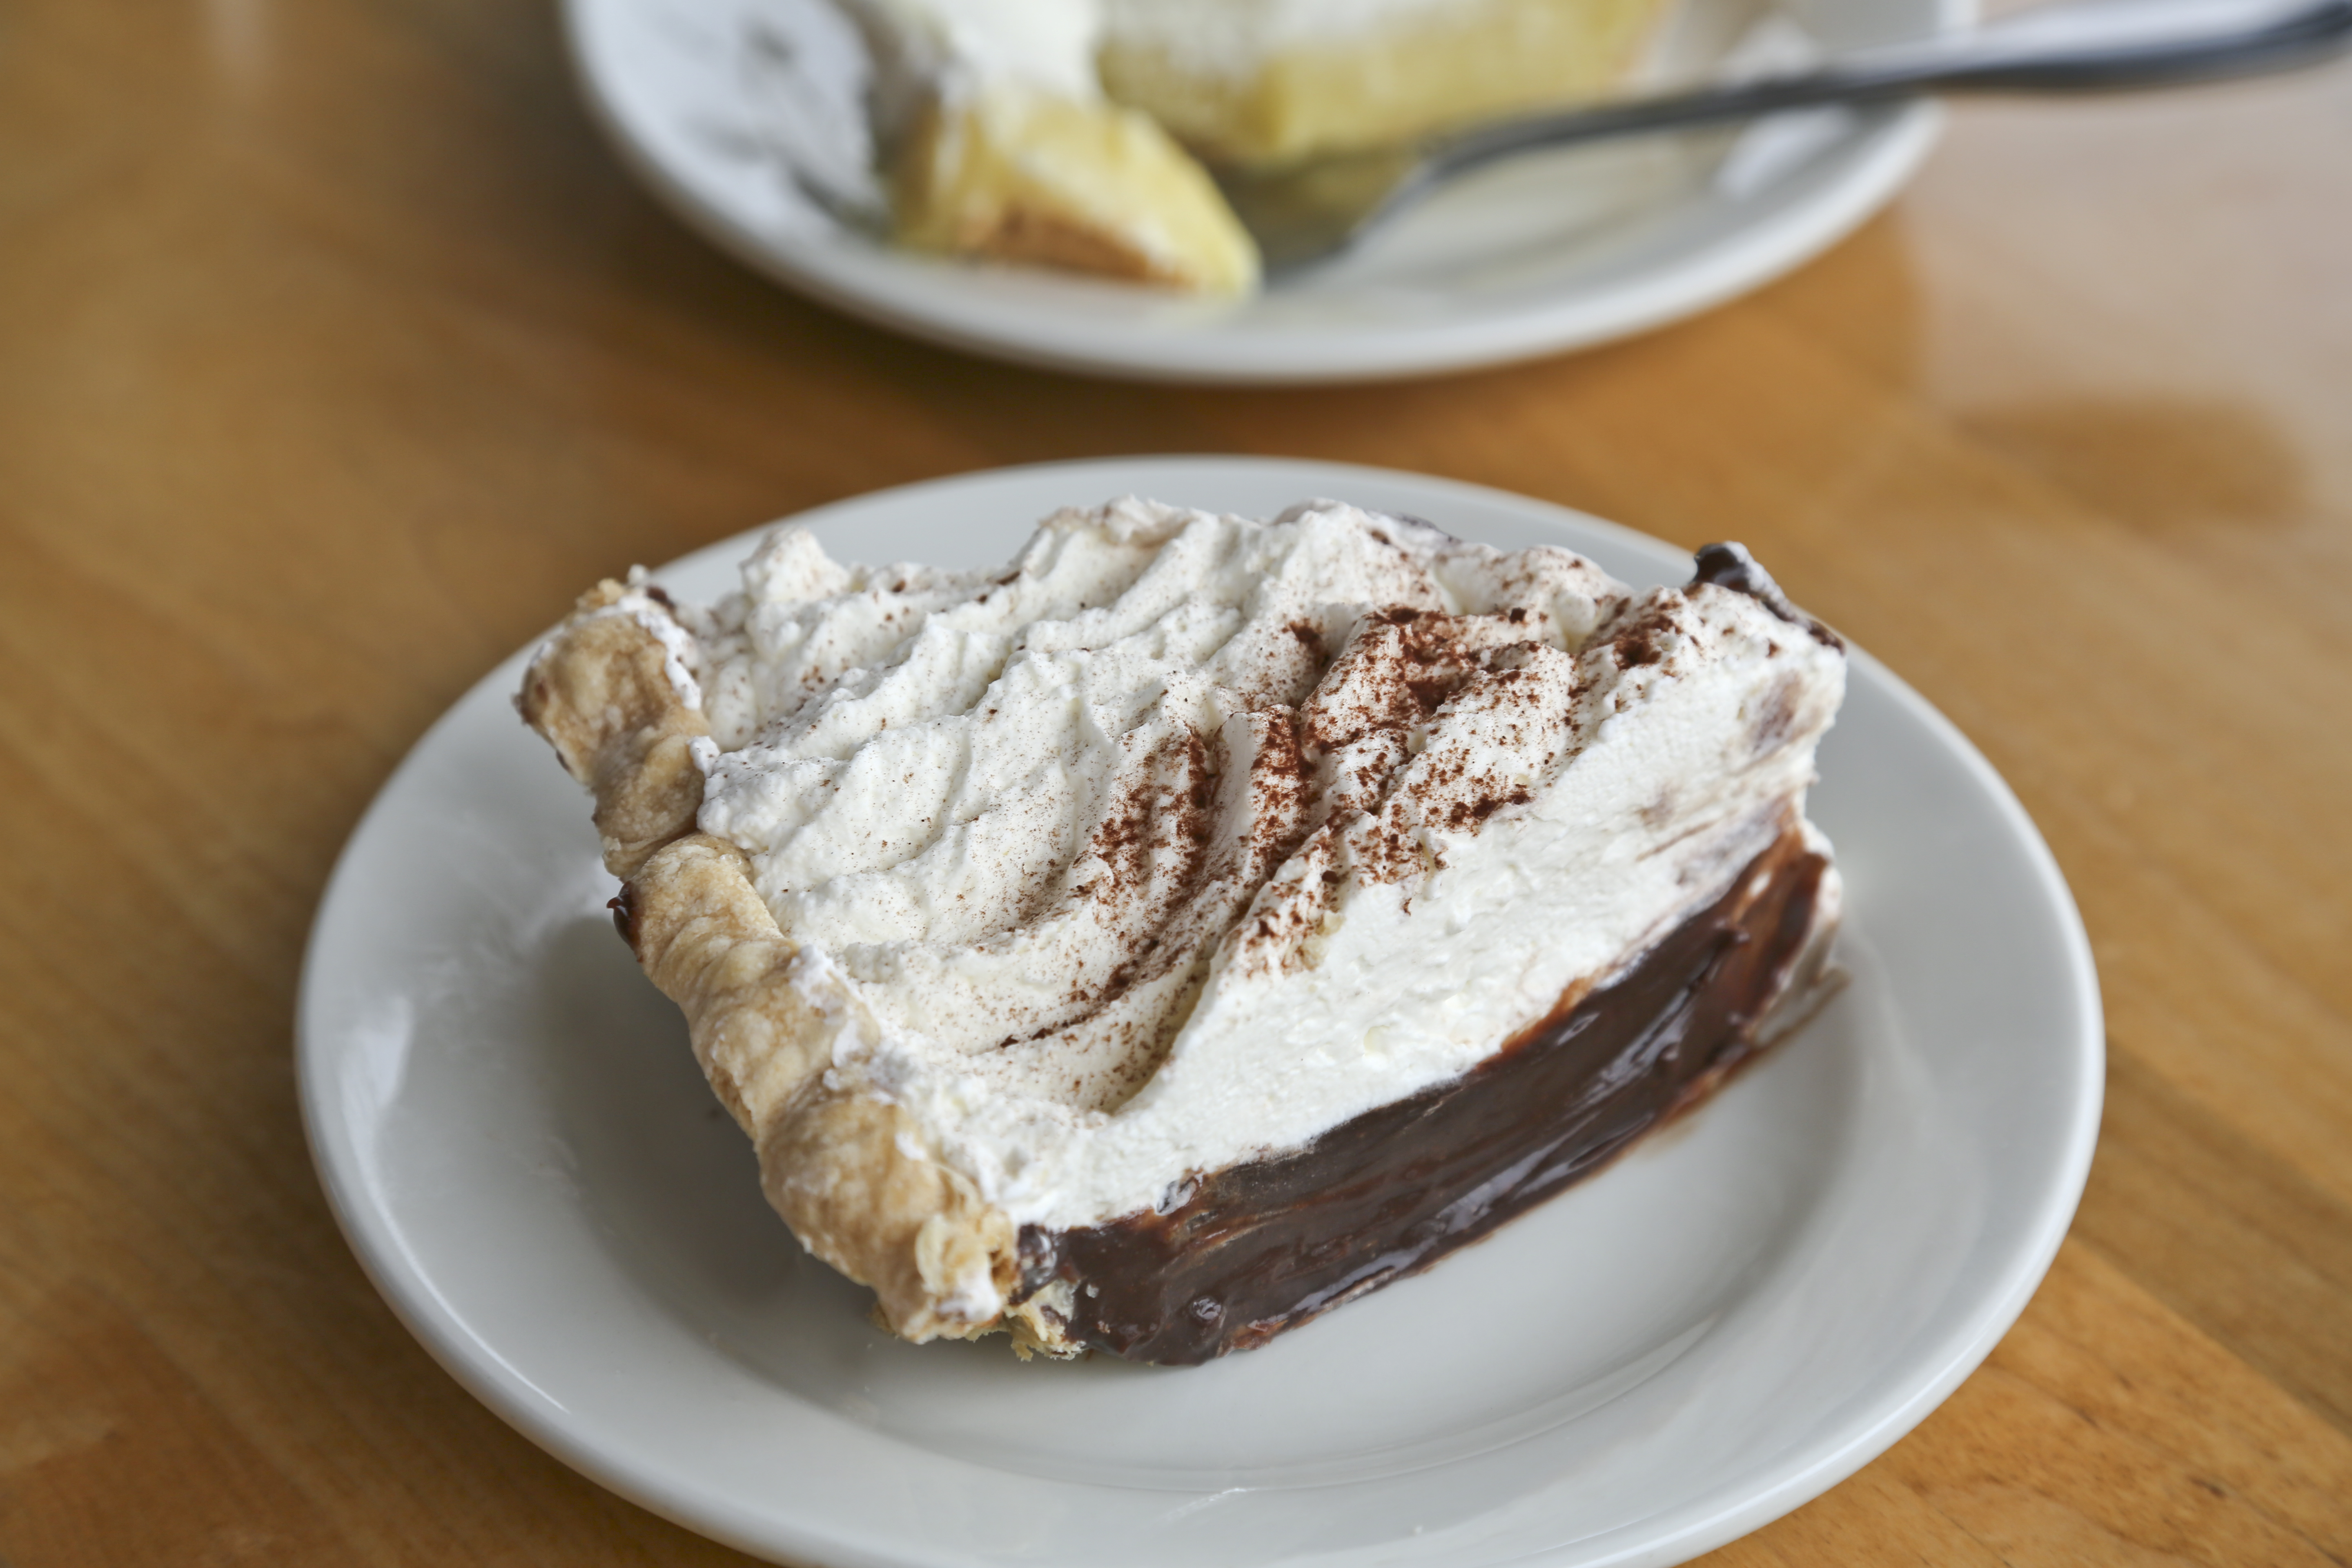 https://alabama-travel.s3.amazonaws.com/partners-uploads/photo/image/549b167dc913c76ecd00006e/_012_jnn_chocolate_pie_horiz.jpg